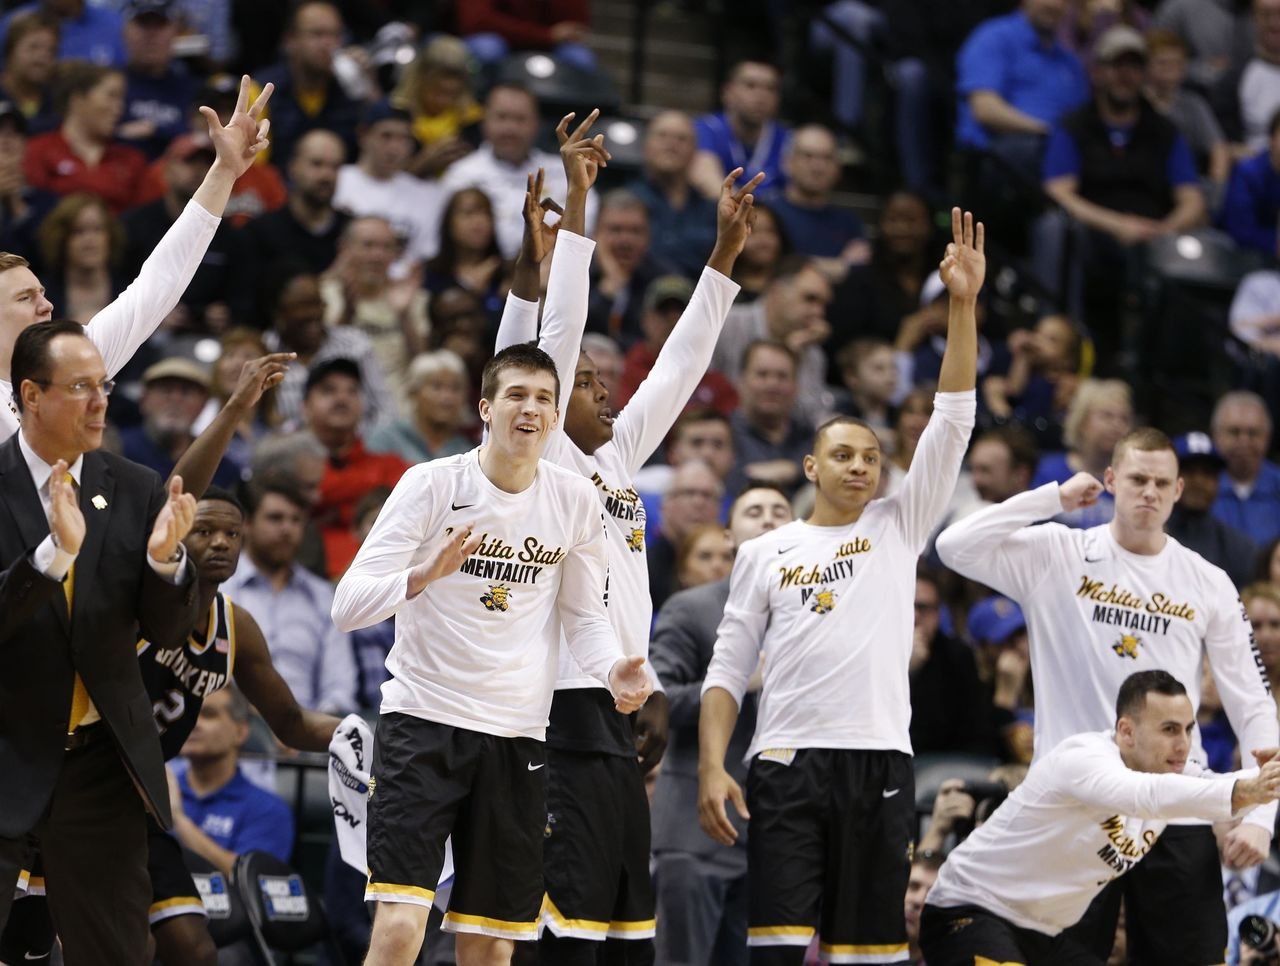 Cropped 2017 03 19t203116z 1553622857 nocid rtrmadp 3 ncaa basketball ncaa tournament second round kentucky vs wichita state